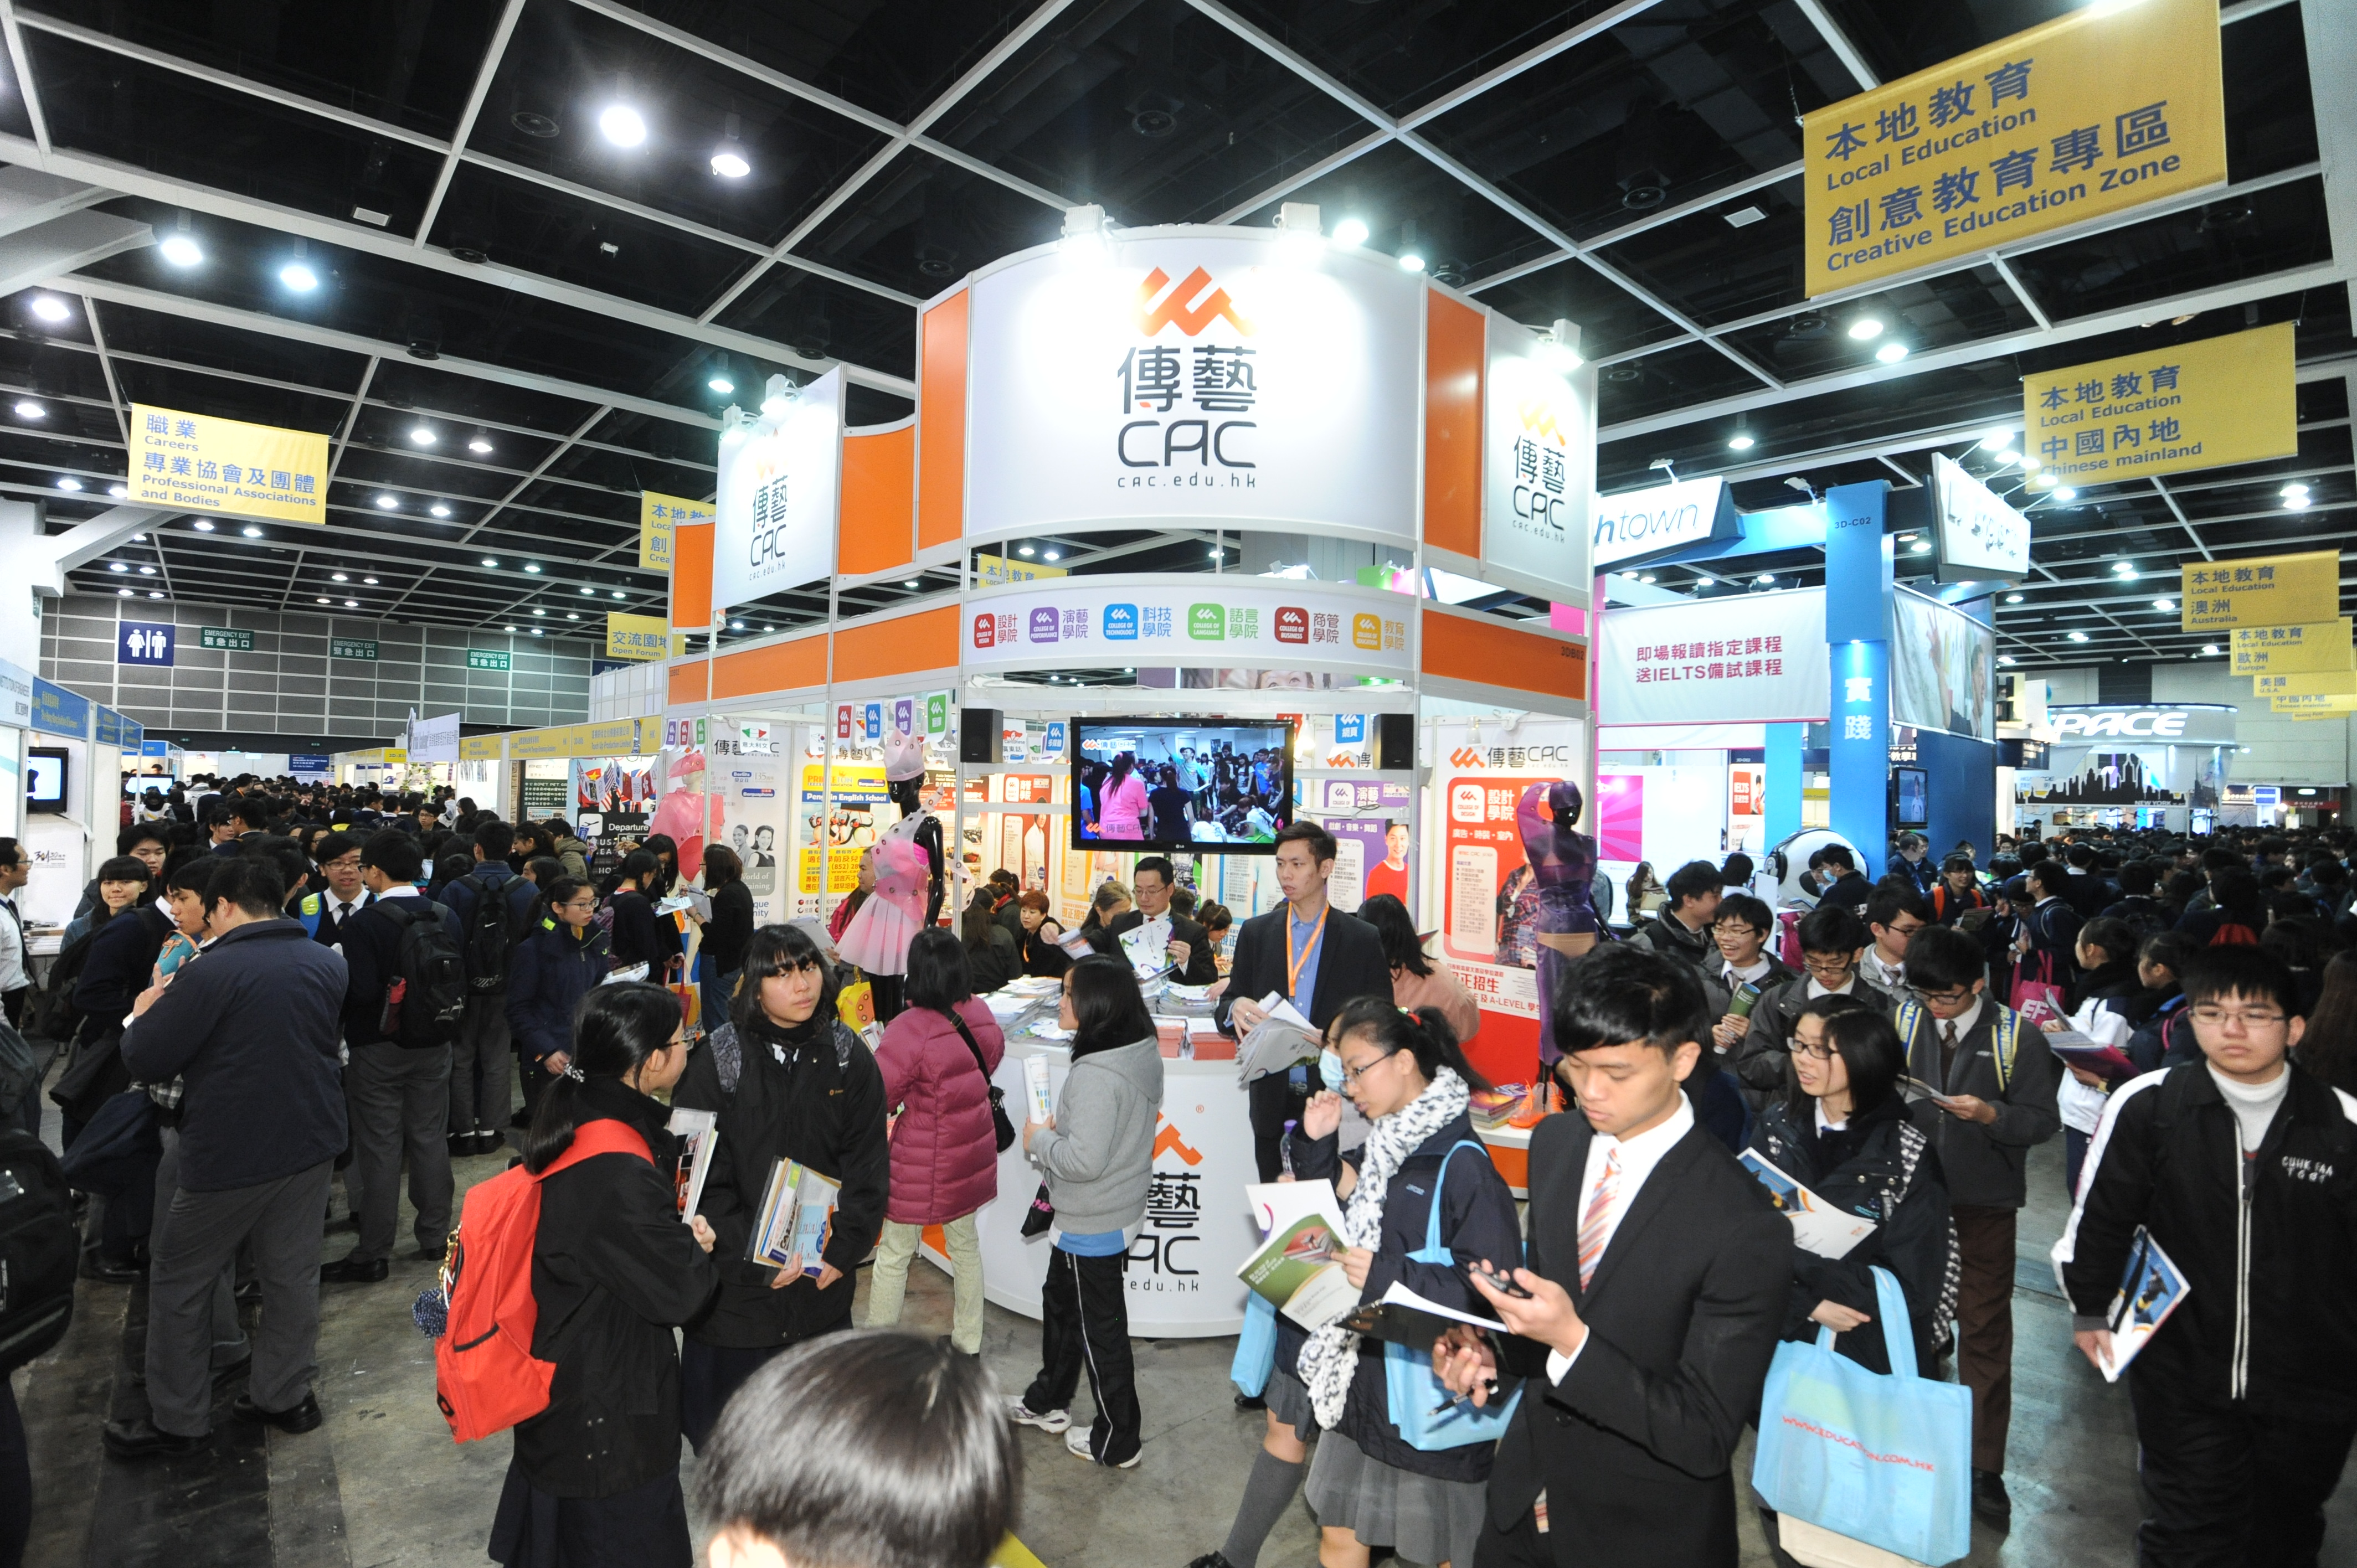 150123-event education and careers expo - BAV_0543